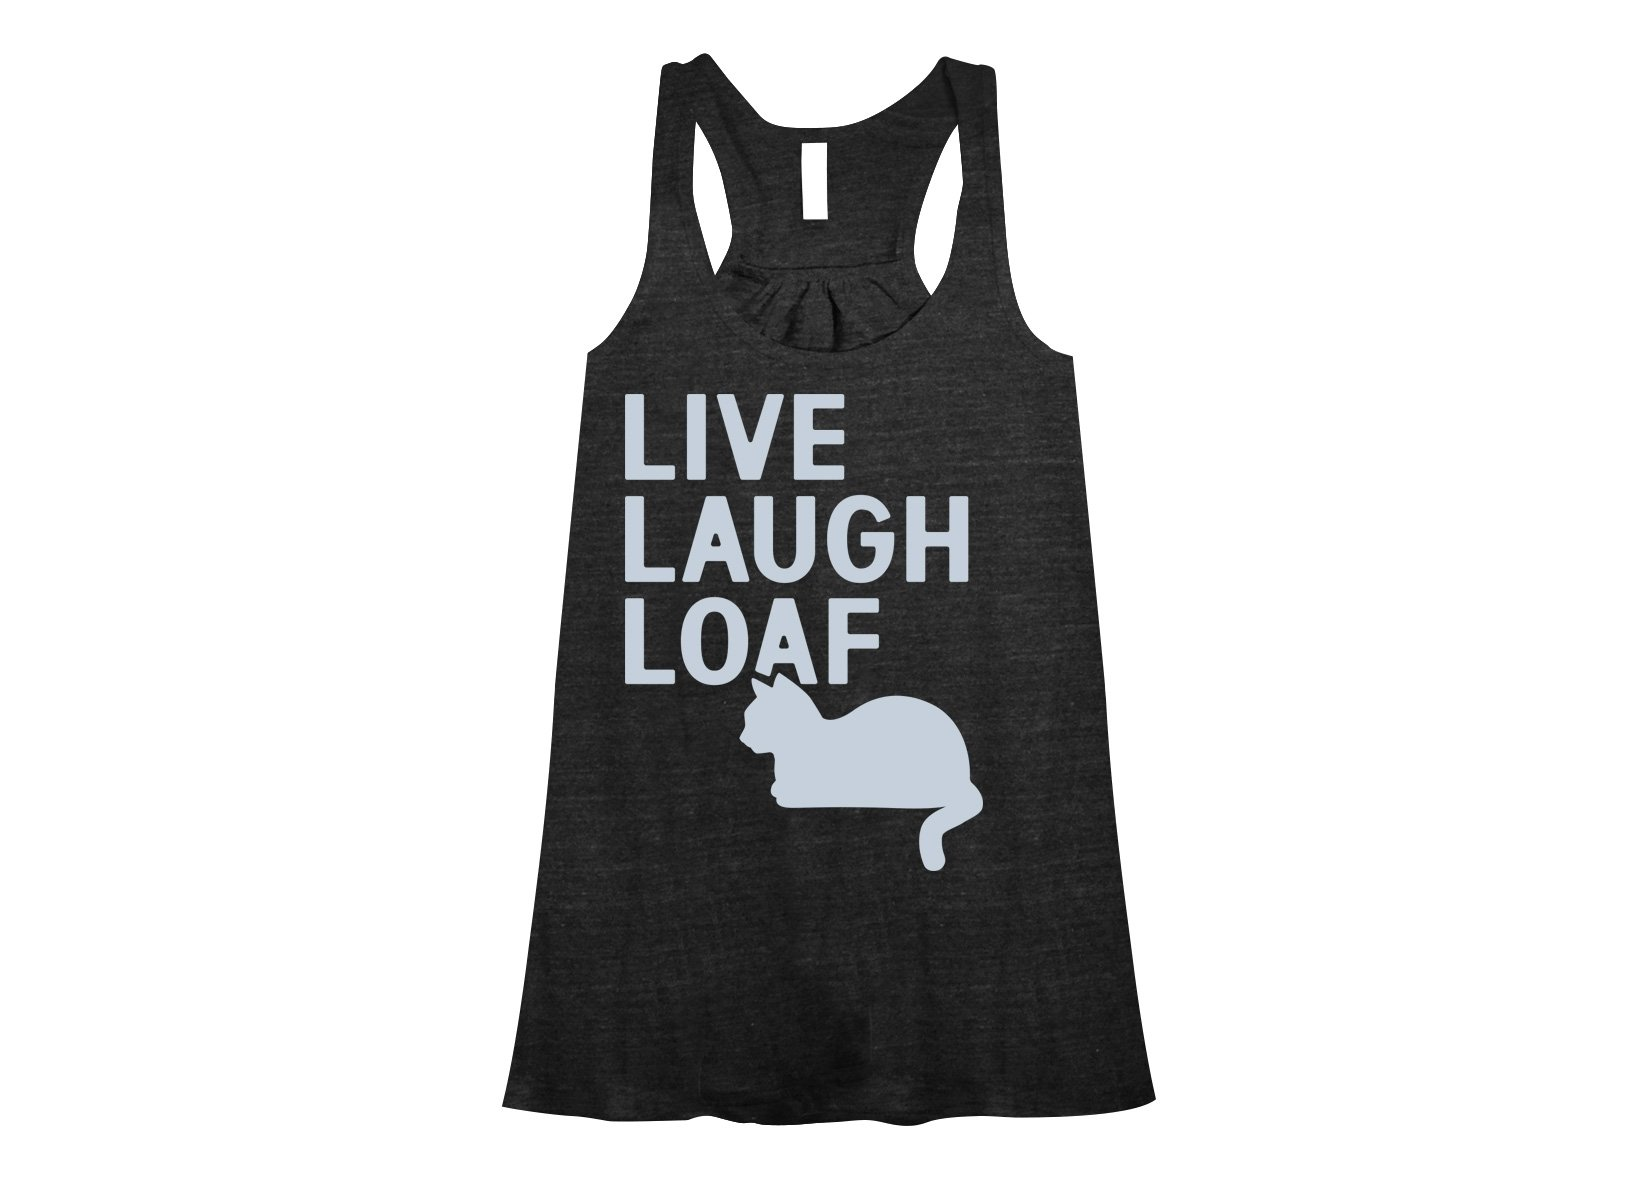 Live Laugh Loaf on Womens Tanks T-Shirt